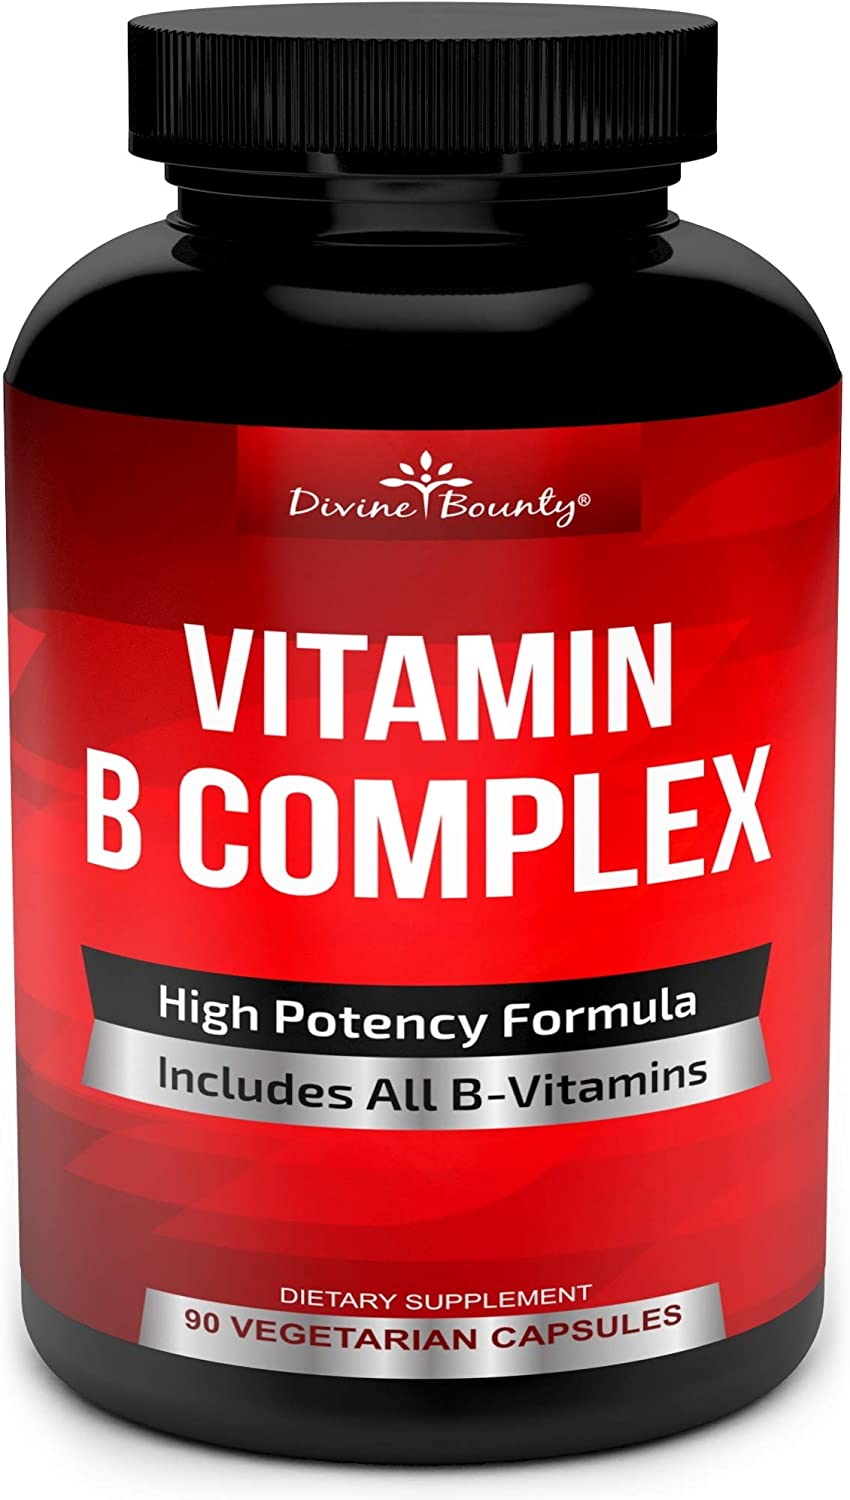 Super B Complex Vitamins - All B Vitamins Including B12, B1, B2, B3, B5, B6, B7, B9, Folic Acid - Vitamin B Complex Supplement - Support Healthy Energy Metabolism - 90 Vegetarian Capsules: Health & Personal Care